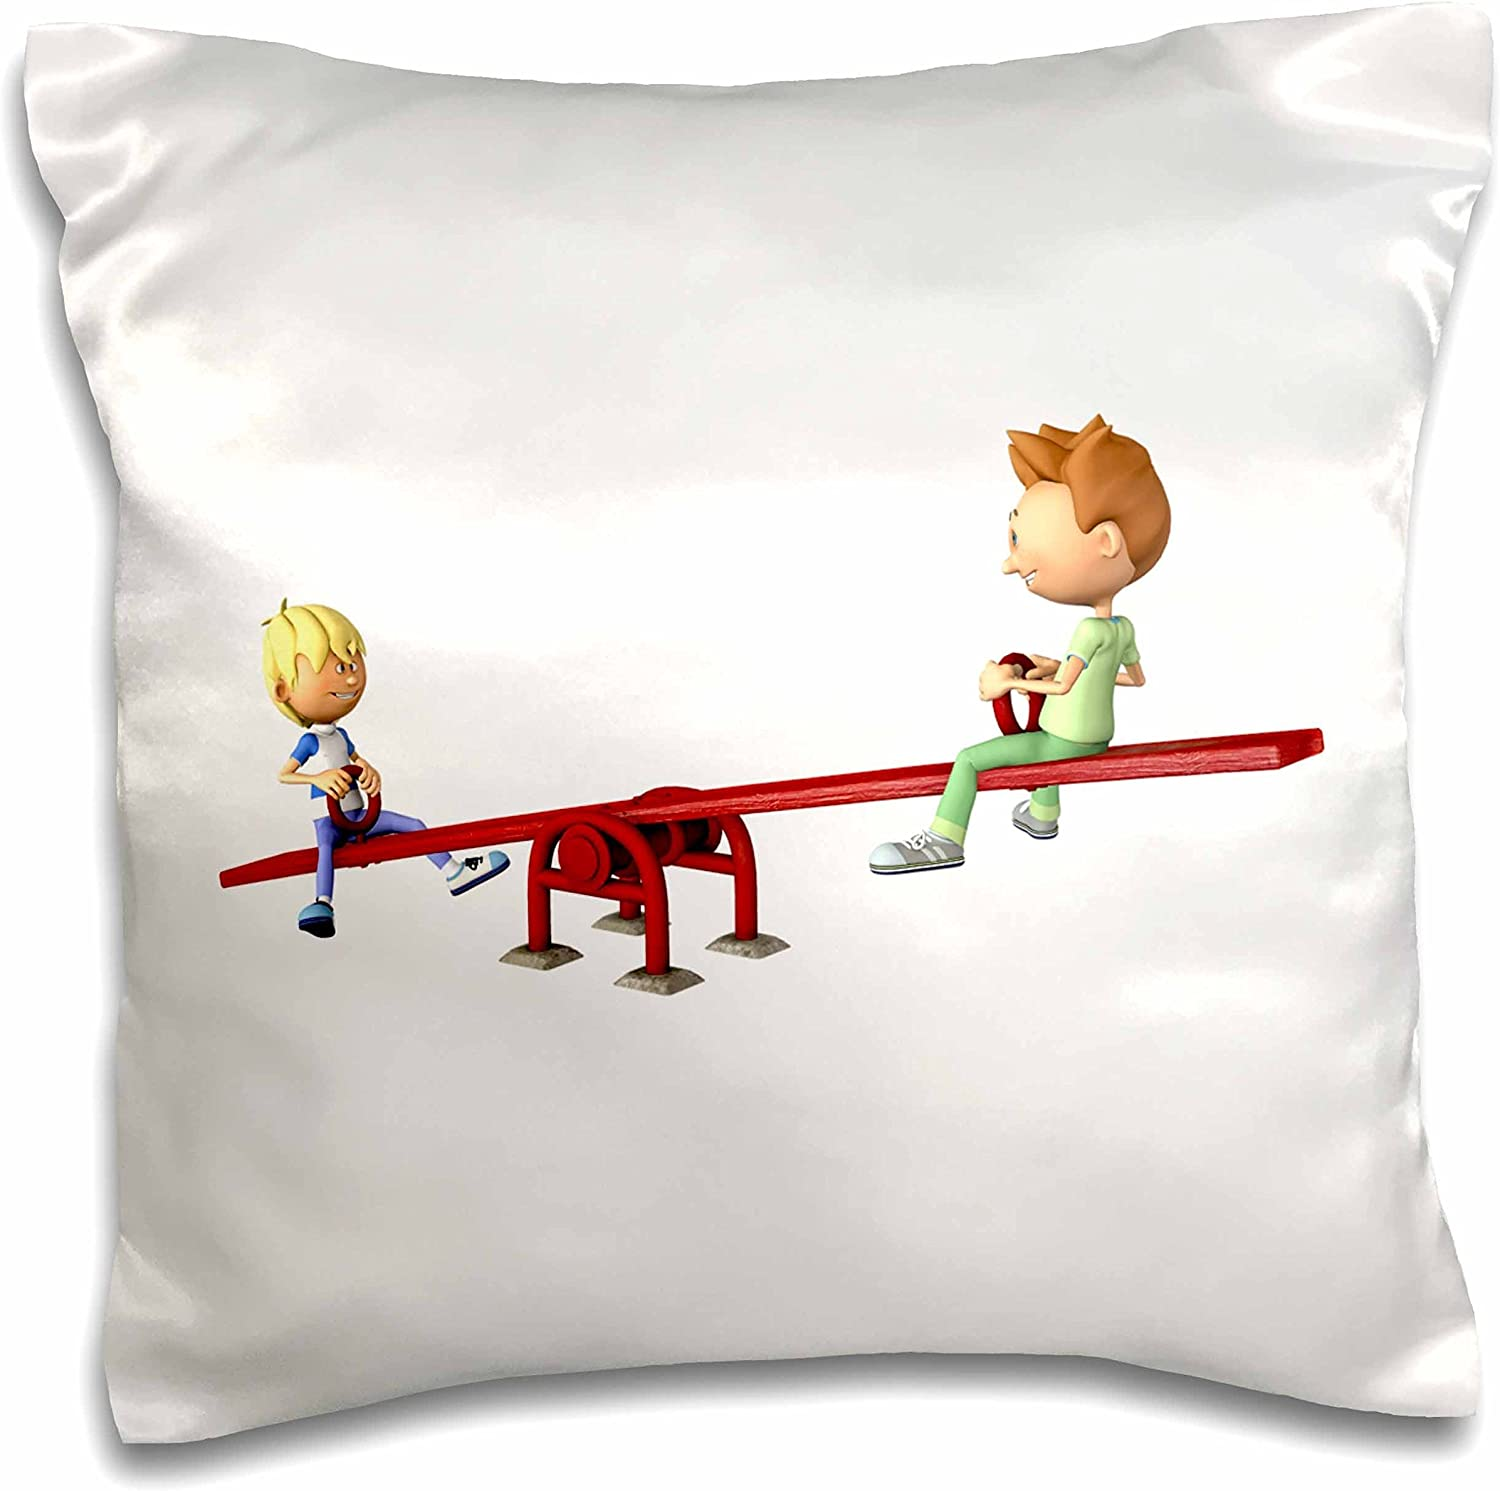 3D Rose Two Cartoon Boys On A See Saw Pillow Cases, 16